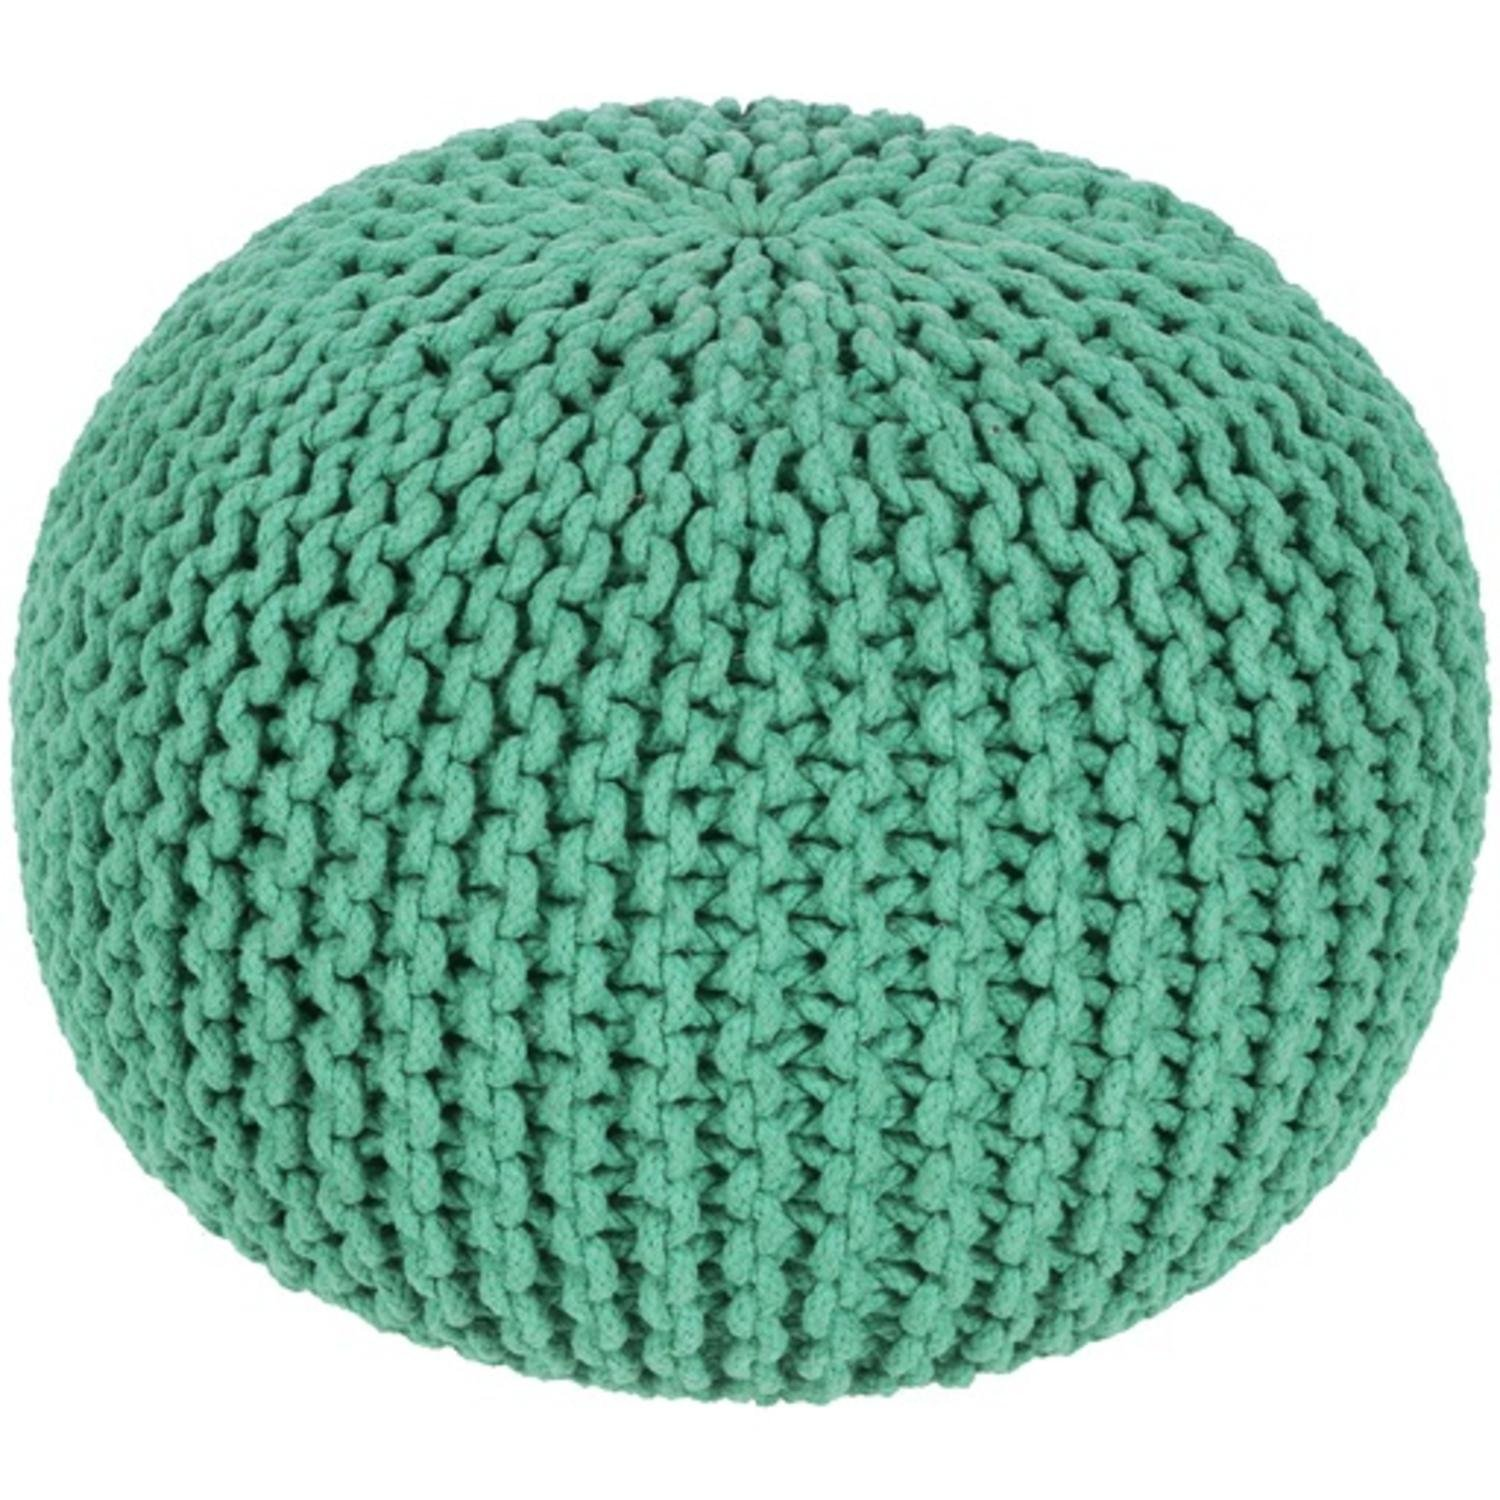 20'' x 14'' Hermosa Peppermint Green Hand Crafted Cotton Round Pouf Ottoman by Diva At Home